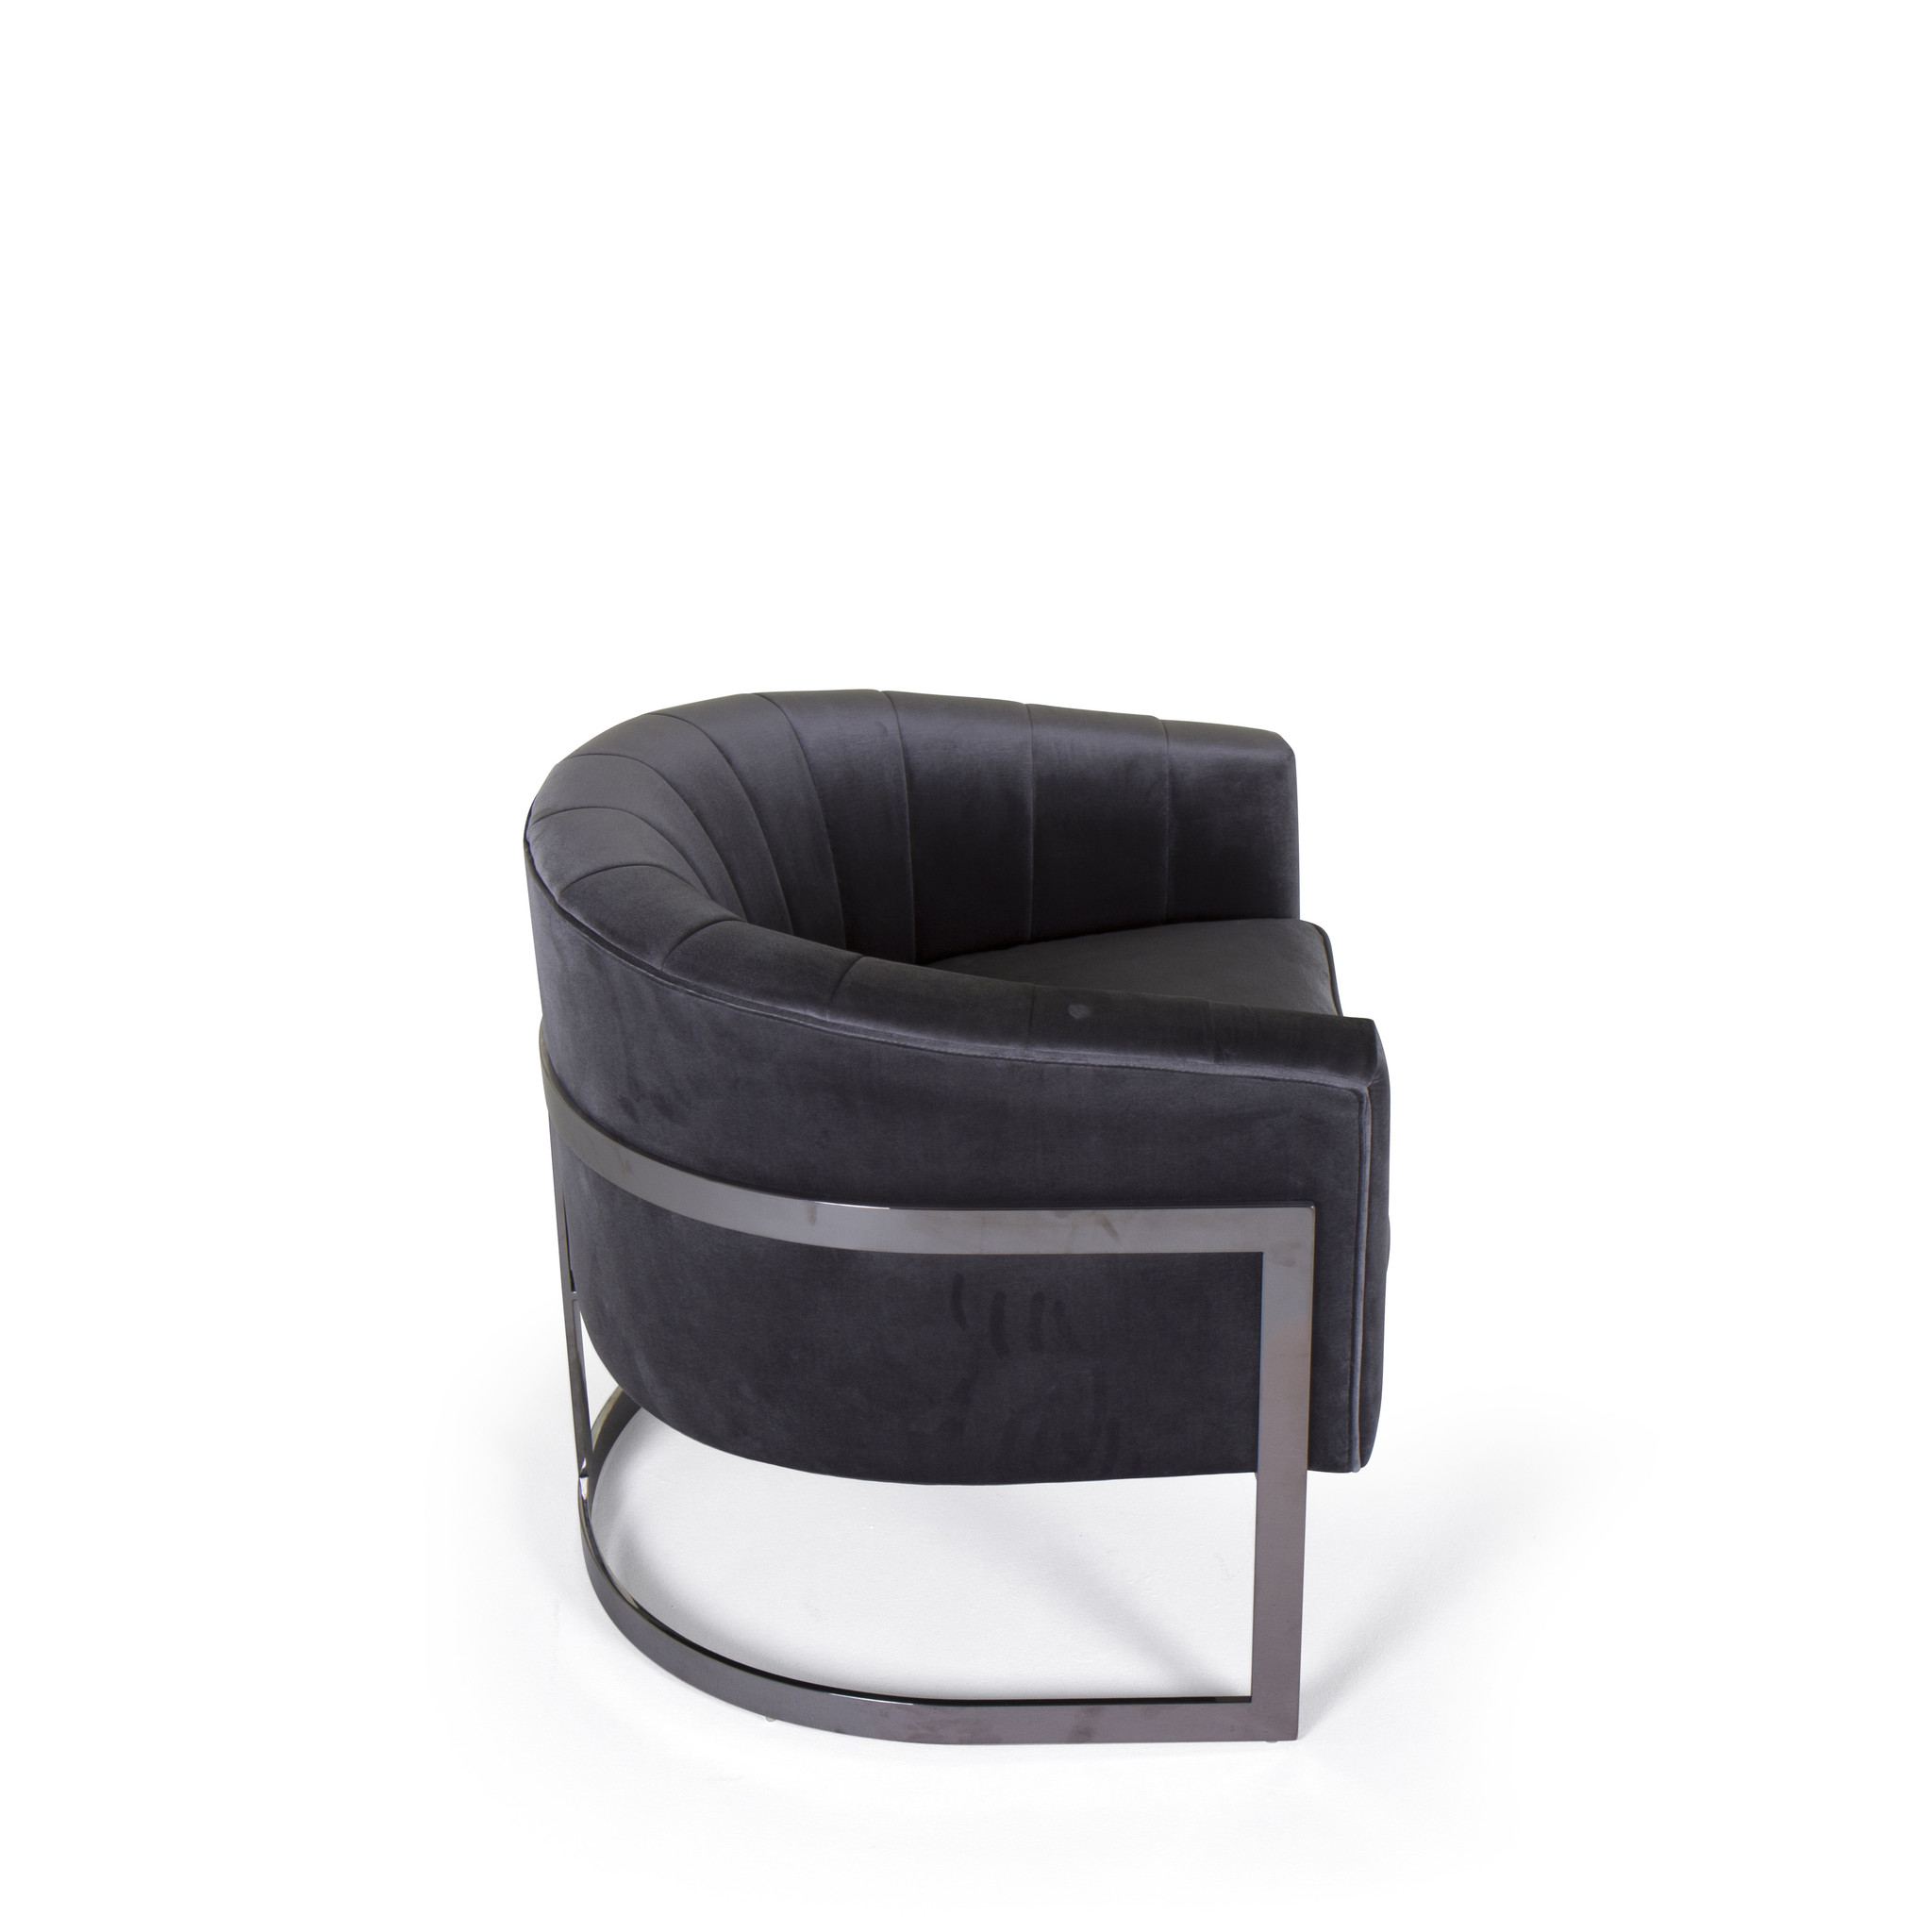 ROBERTO Arm Chair Steel Grey Nola Velvet-3